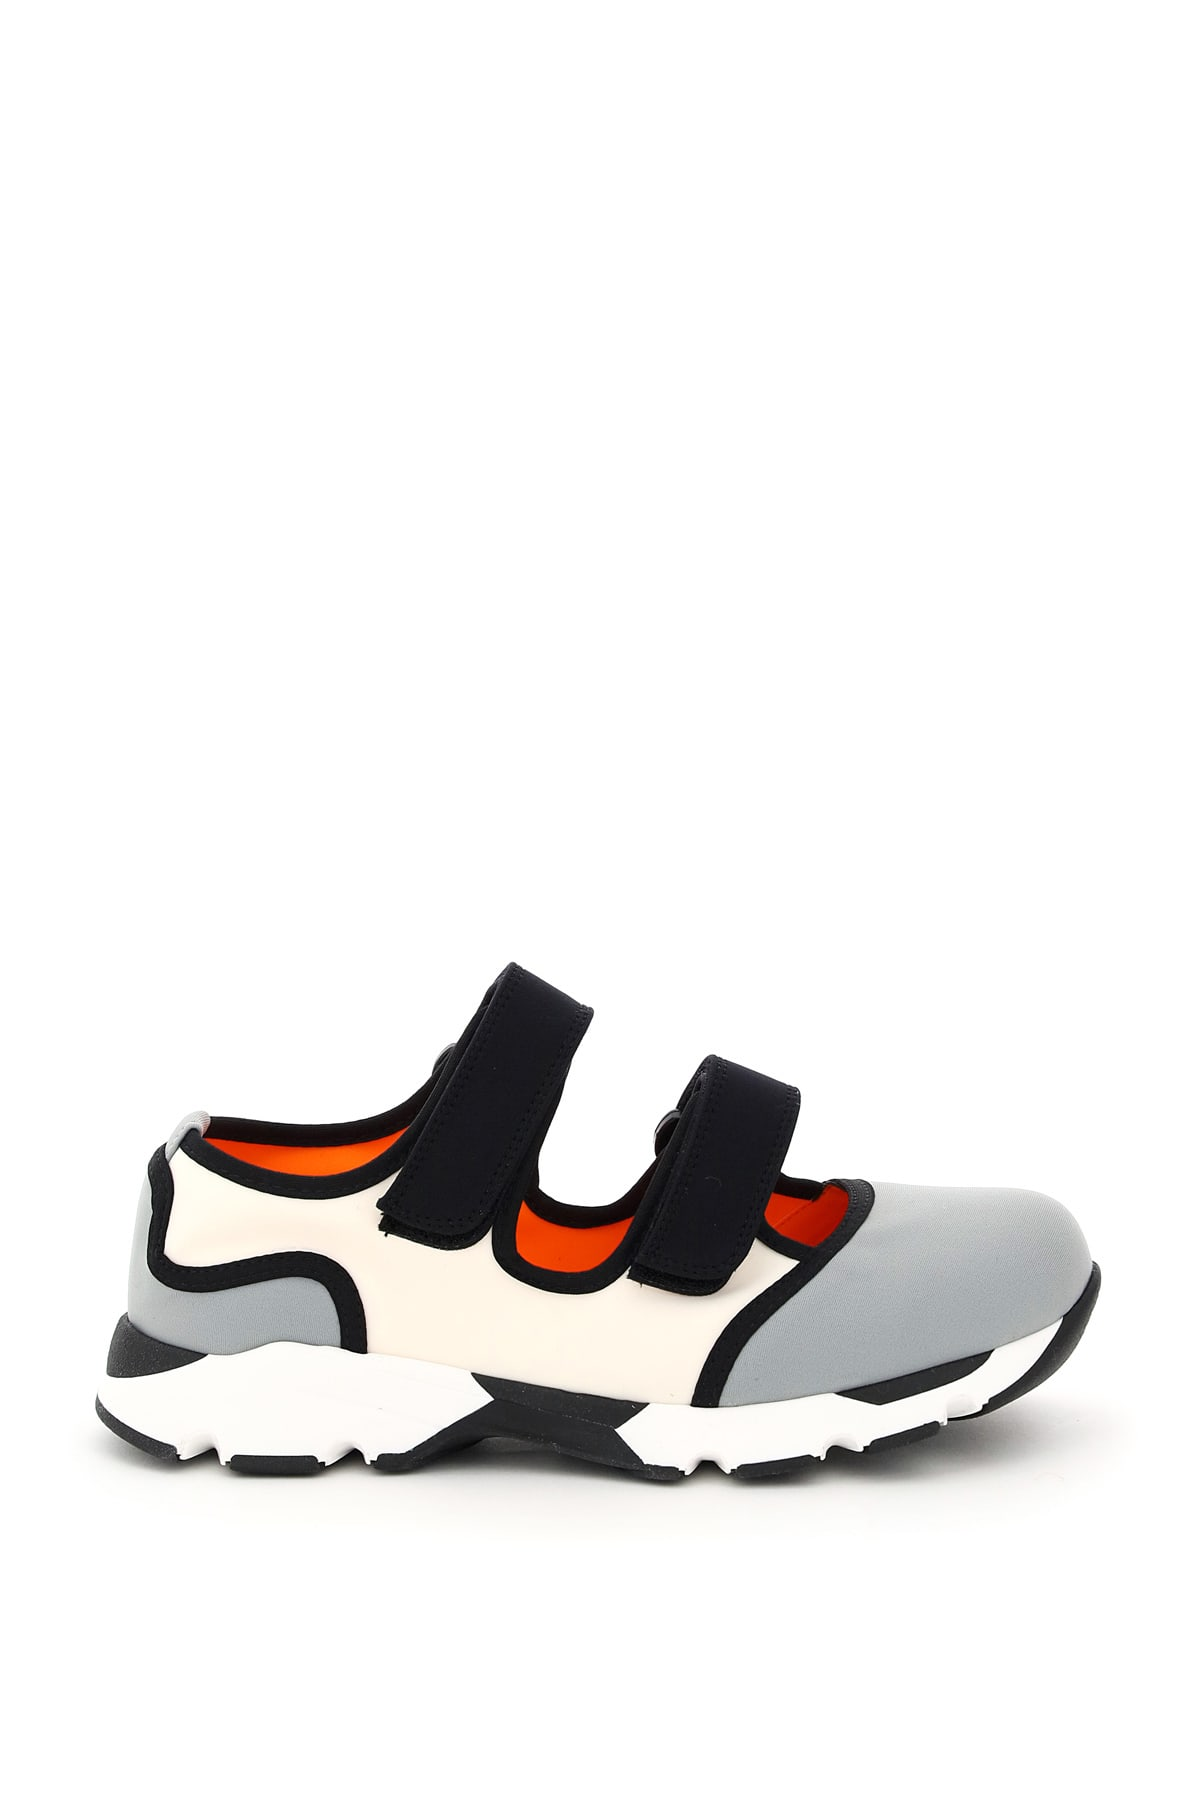 MARNI MULTICOLOR DOUBLE STRAP SNEAKERS